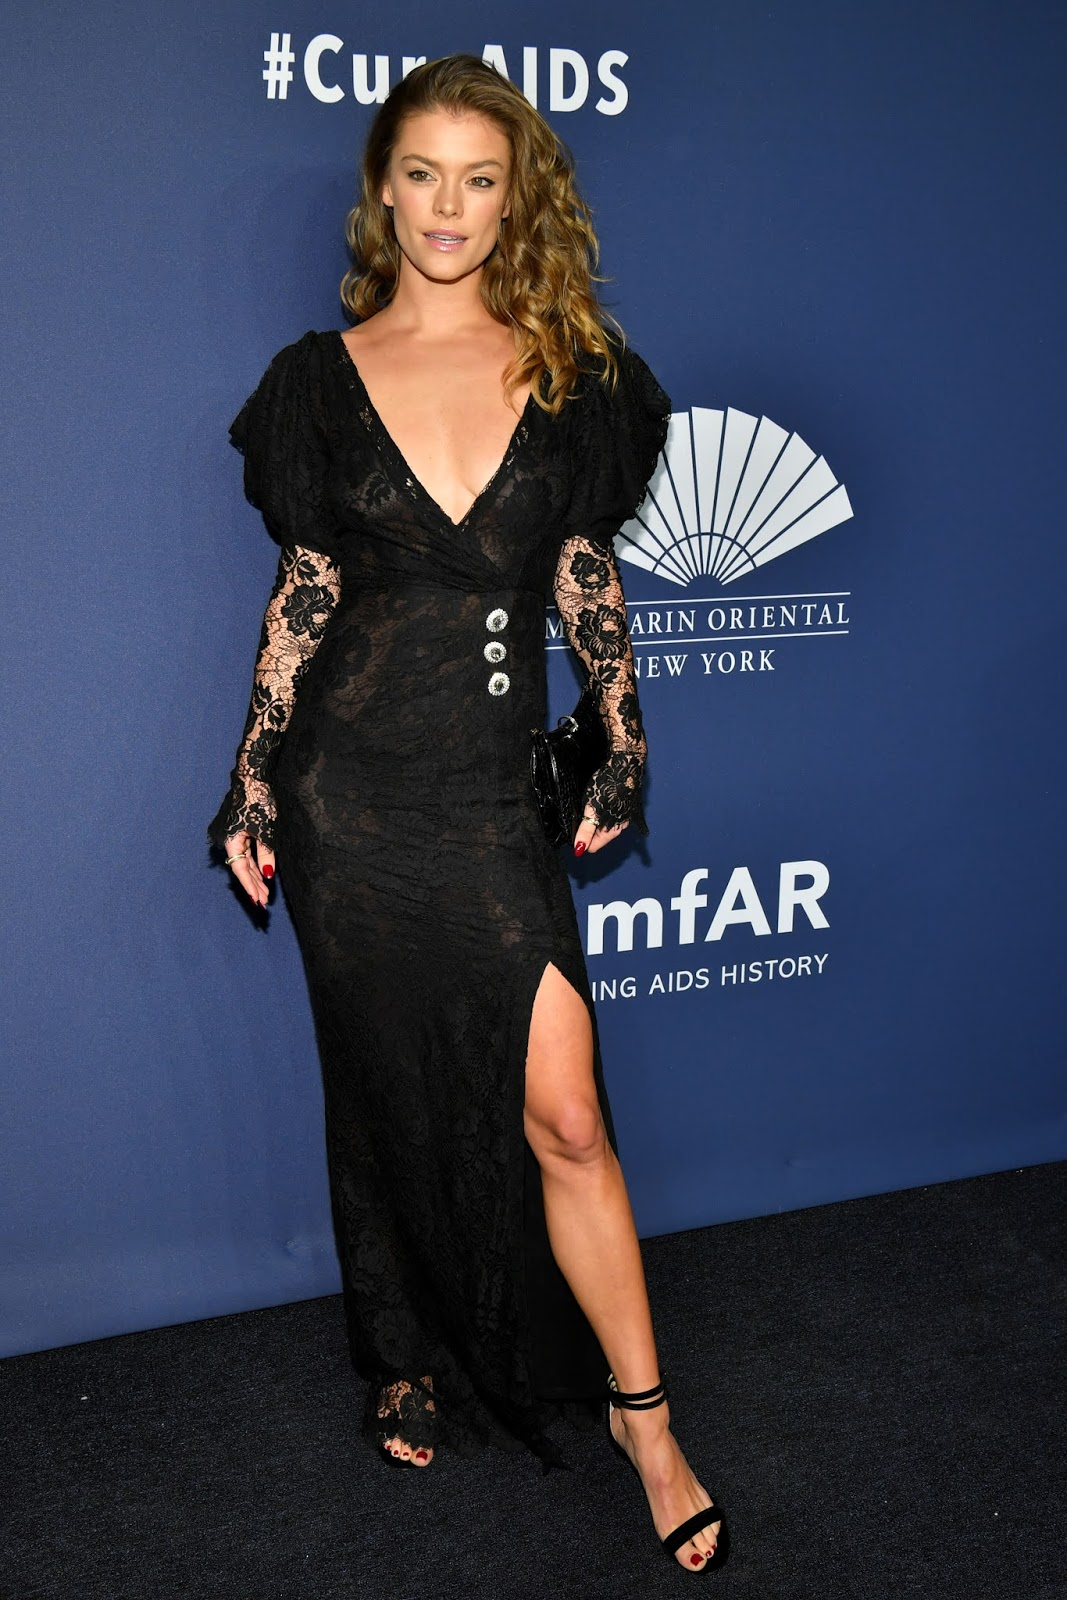 Nina Agdal - 22nd annual amfAR Gala Benefit For AIDS Research in NYC - Wed Feb 05 2020